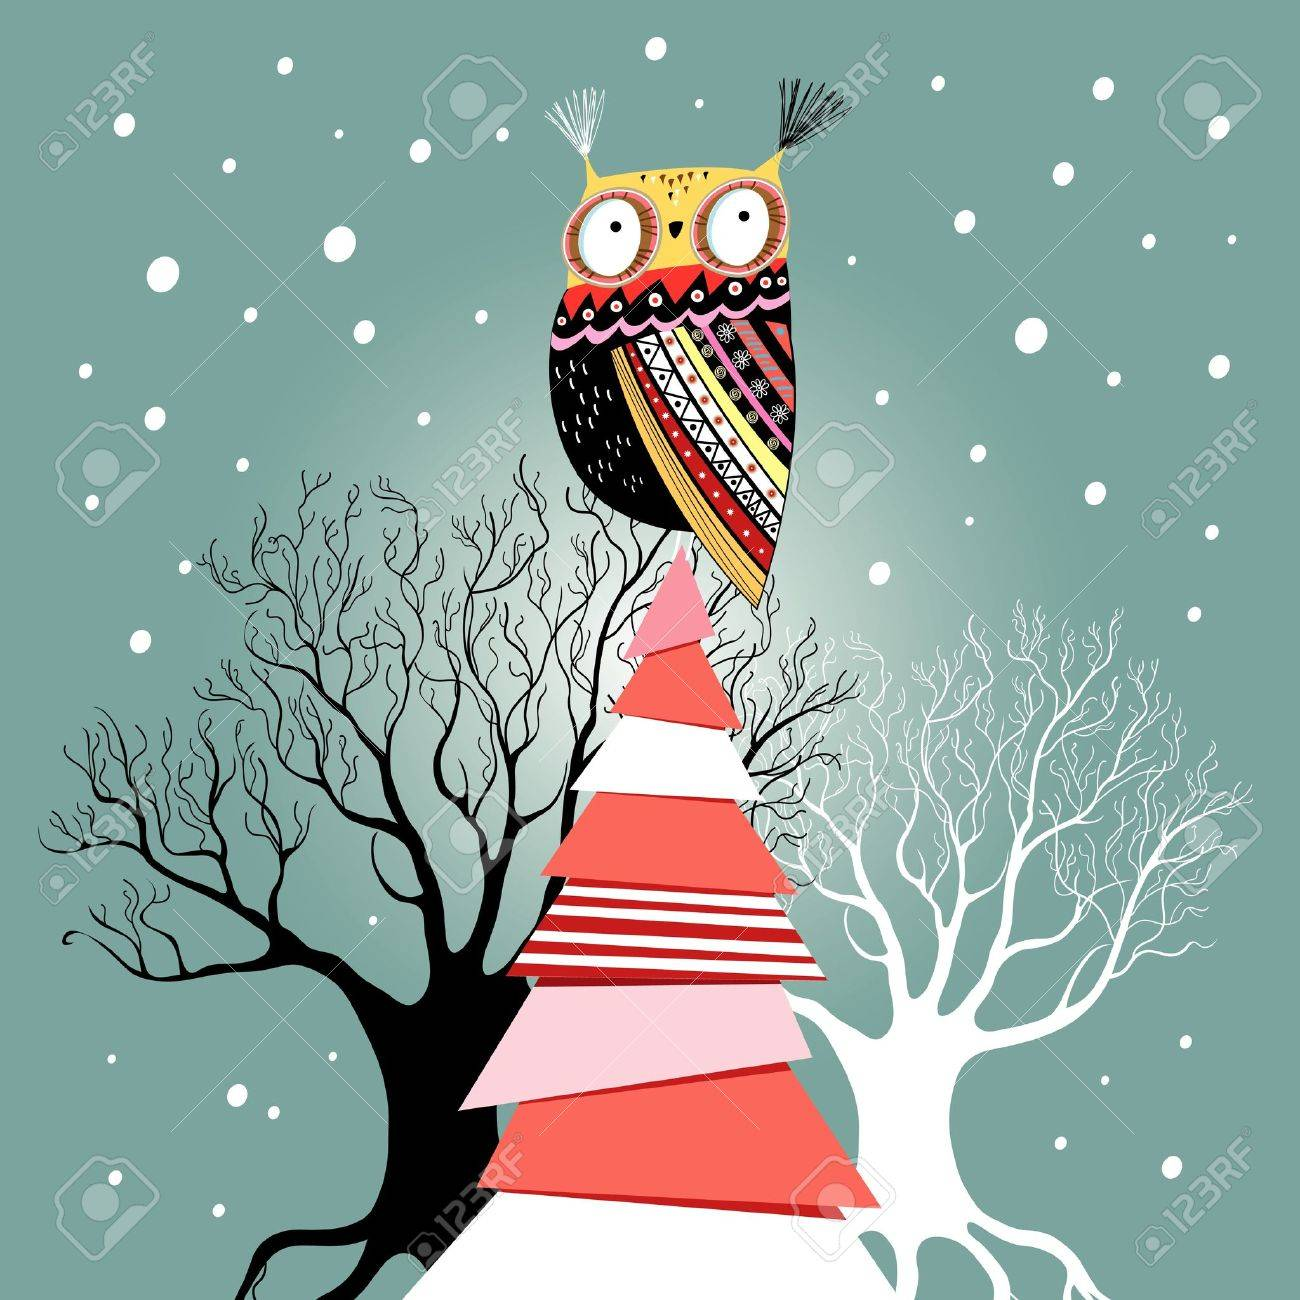 graphic beautiful Christmas card with an owl on the tree on a green background with snow - 20554892